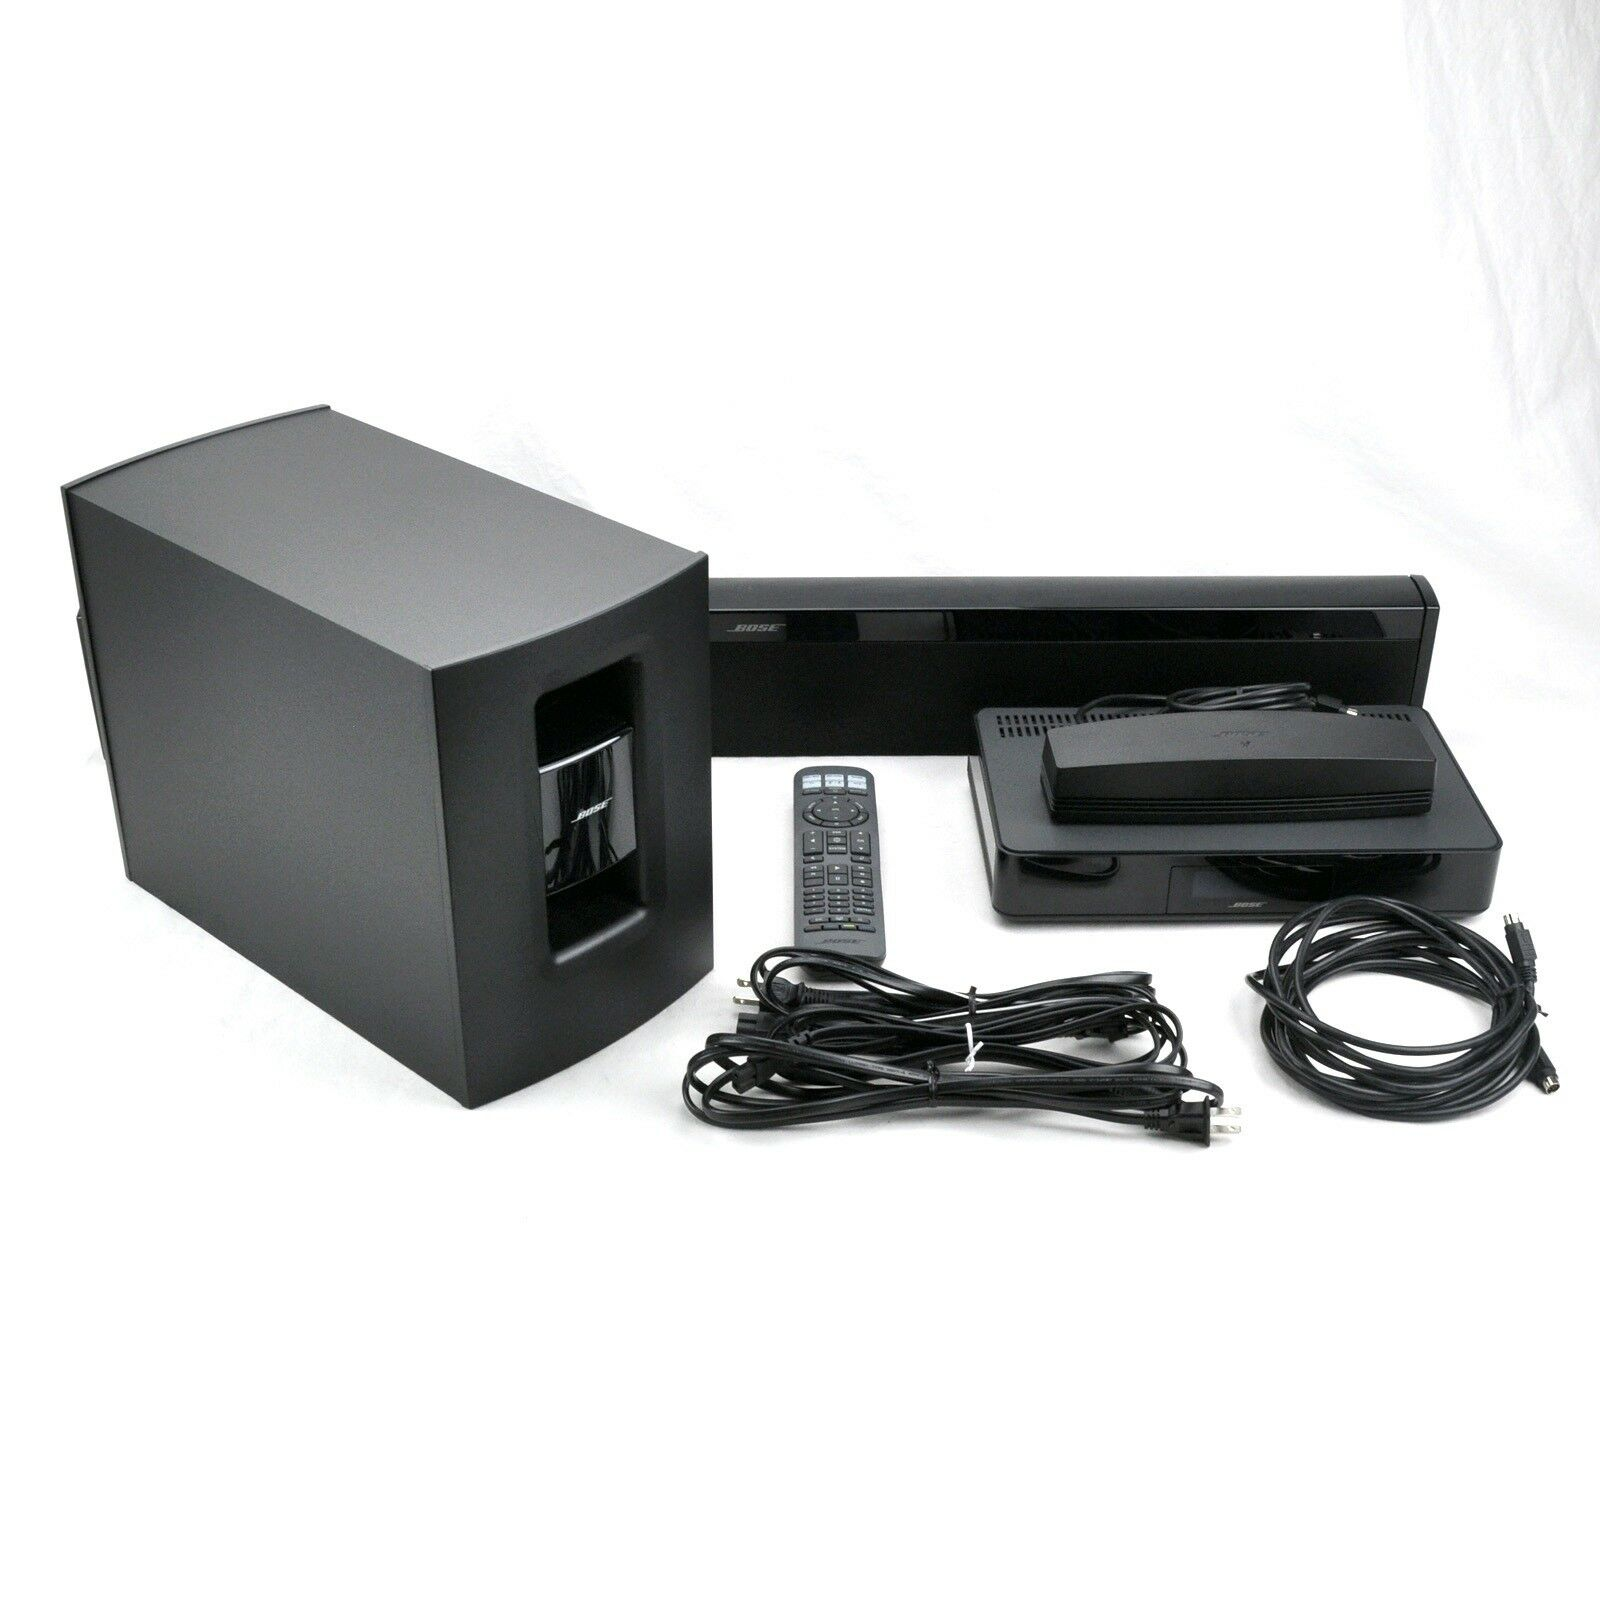 0e8073a0802b Bose SoundTouch 130 Home Theater System - Buymoreproducts.com